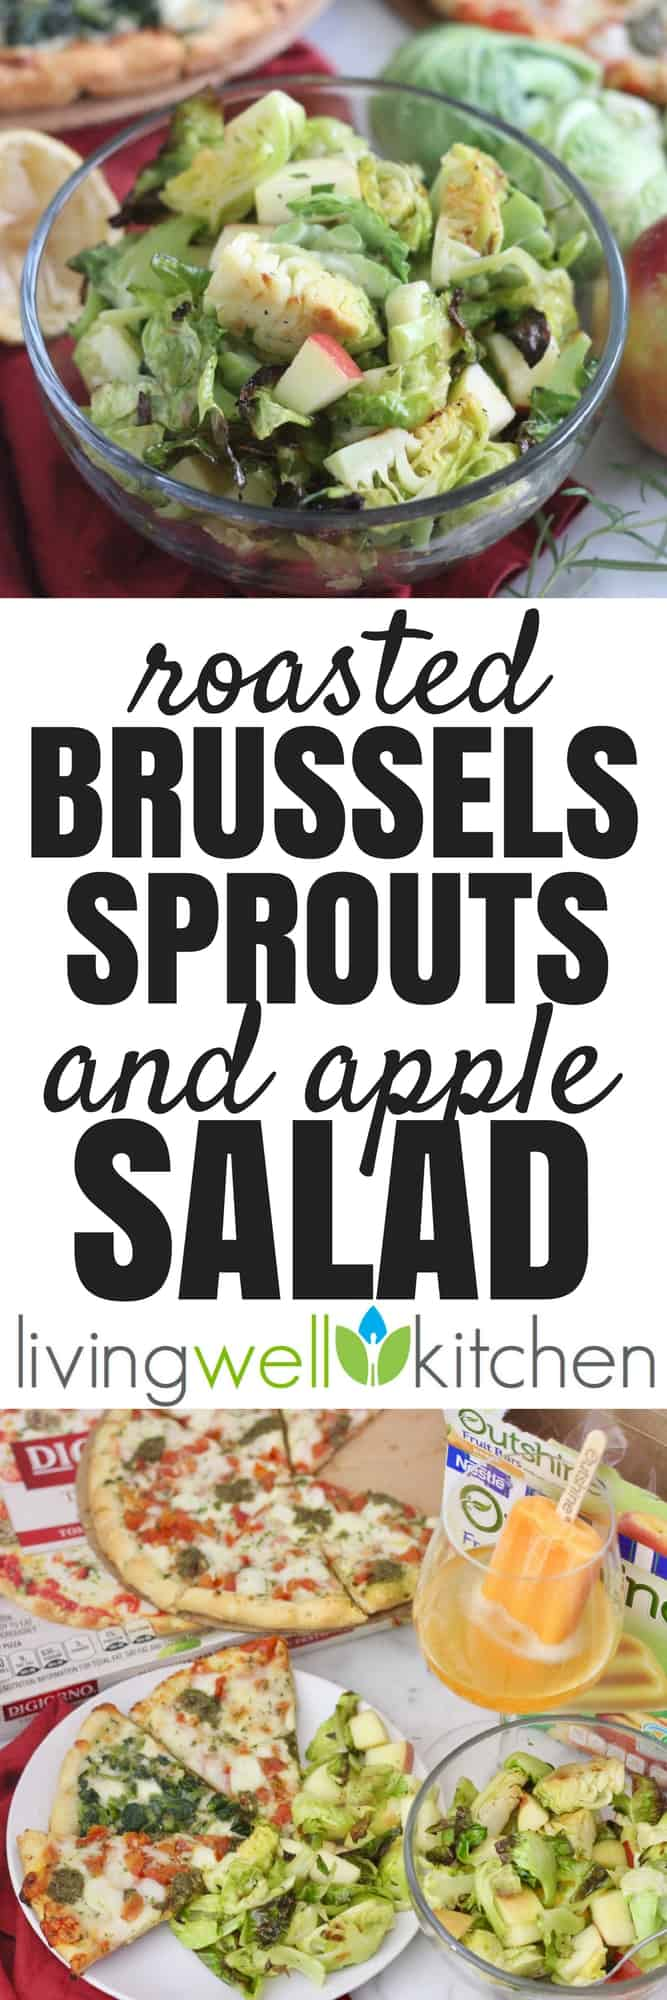 Try this Roasted Brussels Sprouts and Apple Salad paired with pizza for a delicious, balanced, and satisfying meal. Don't forget the fruit bars and your favorite bubbly drink for dessert! #ad #BalanceYourPlate #pizzanight #girlsnight #vegetarian #vegetarianfood #recipes #brusselssprouts